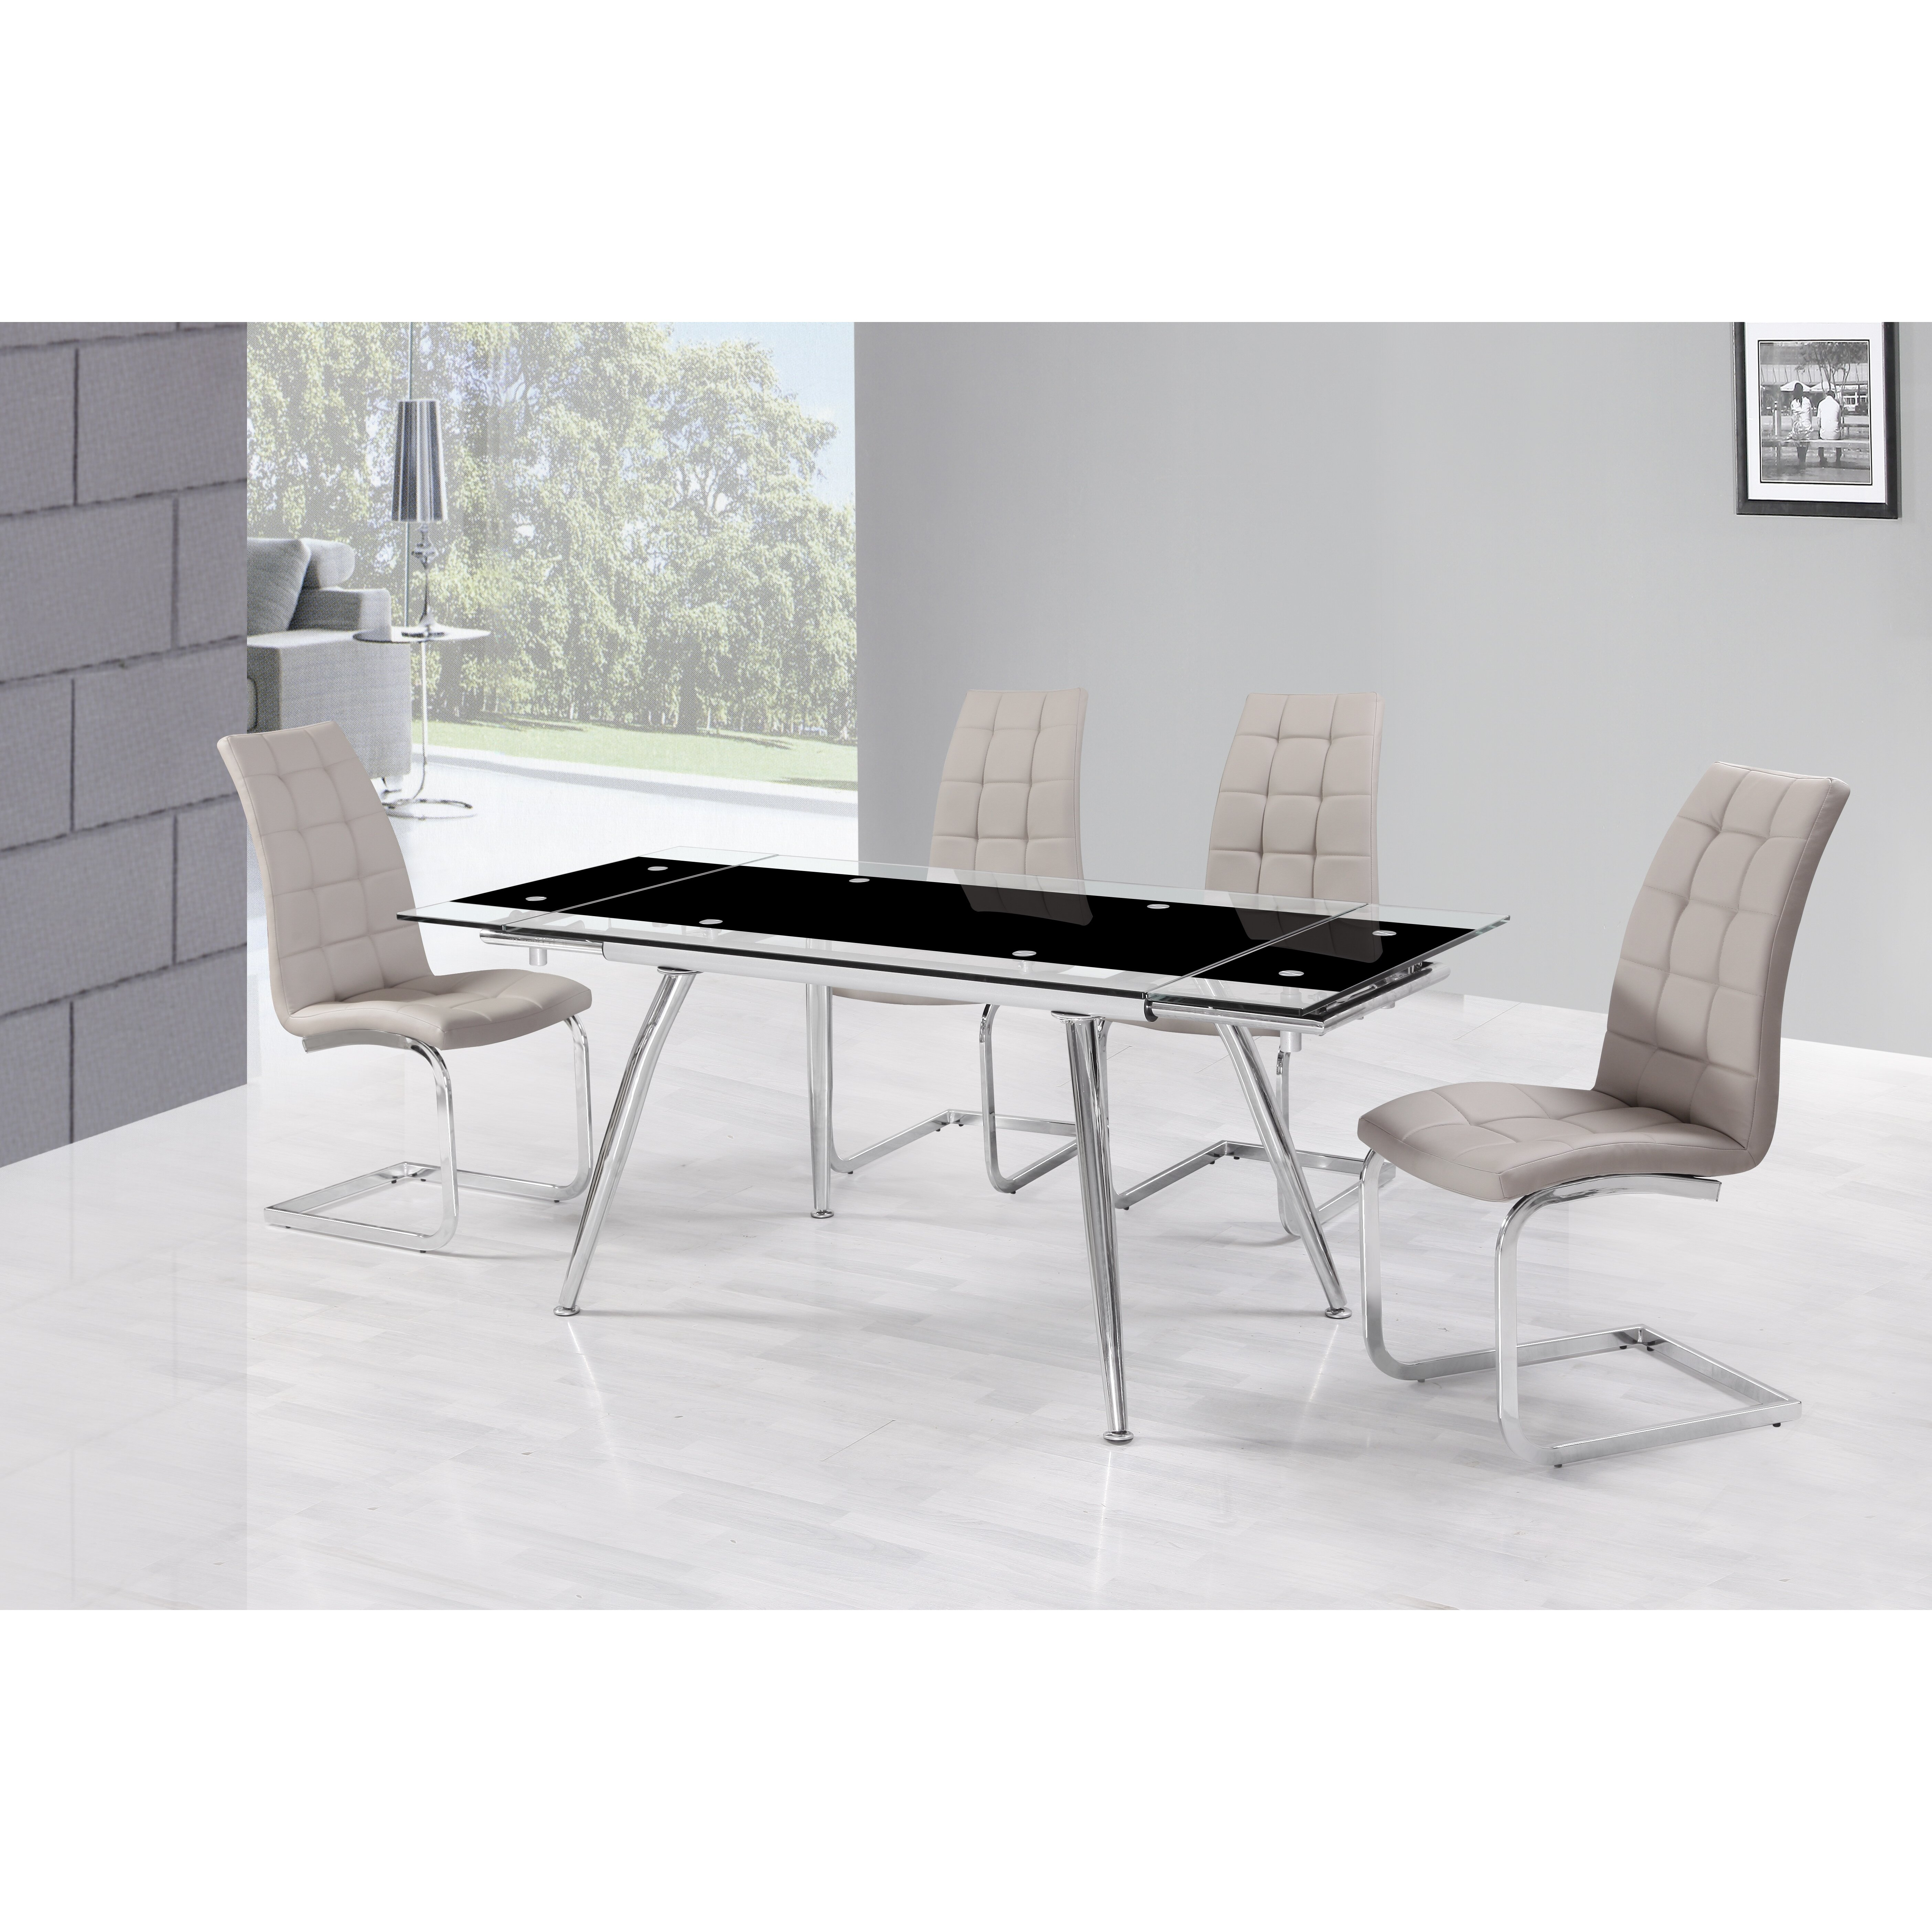 Urban Designs Micha Extendable Dining Table amp Reviews  : Urban Designs Micha Extendable Dining Table from www.wayfair.co.uk size 5616 x 5616 jpeg 3295kB